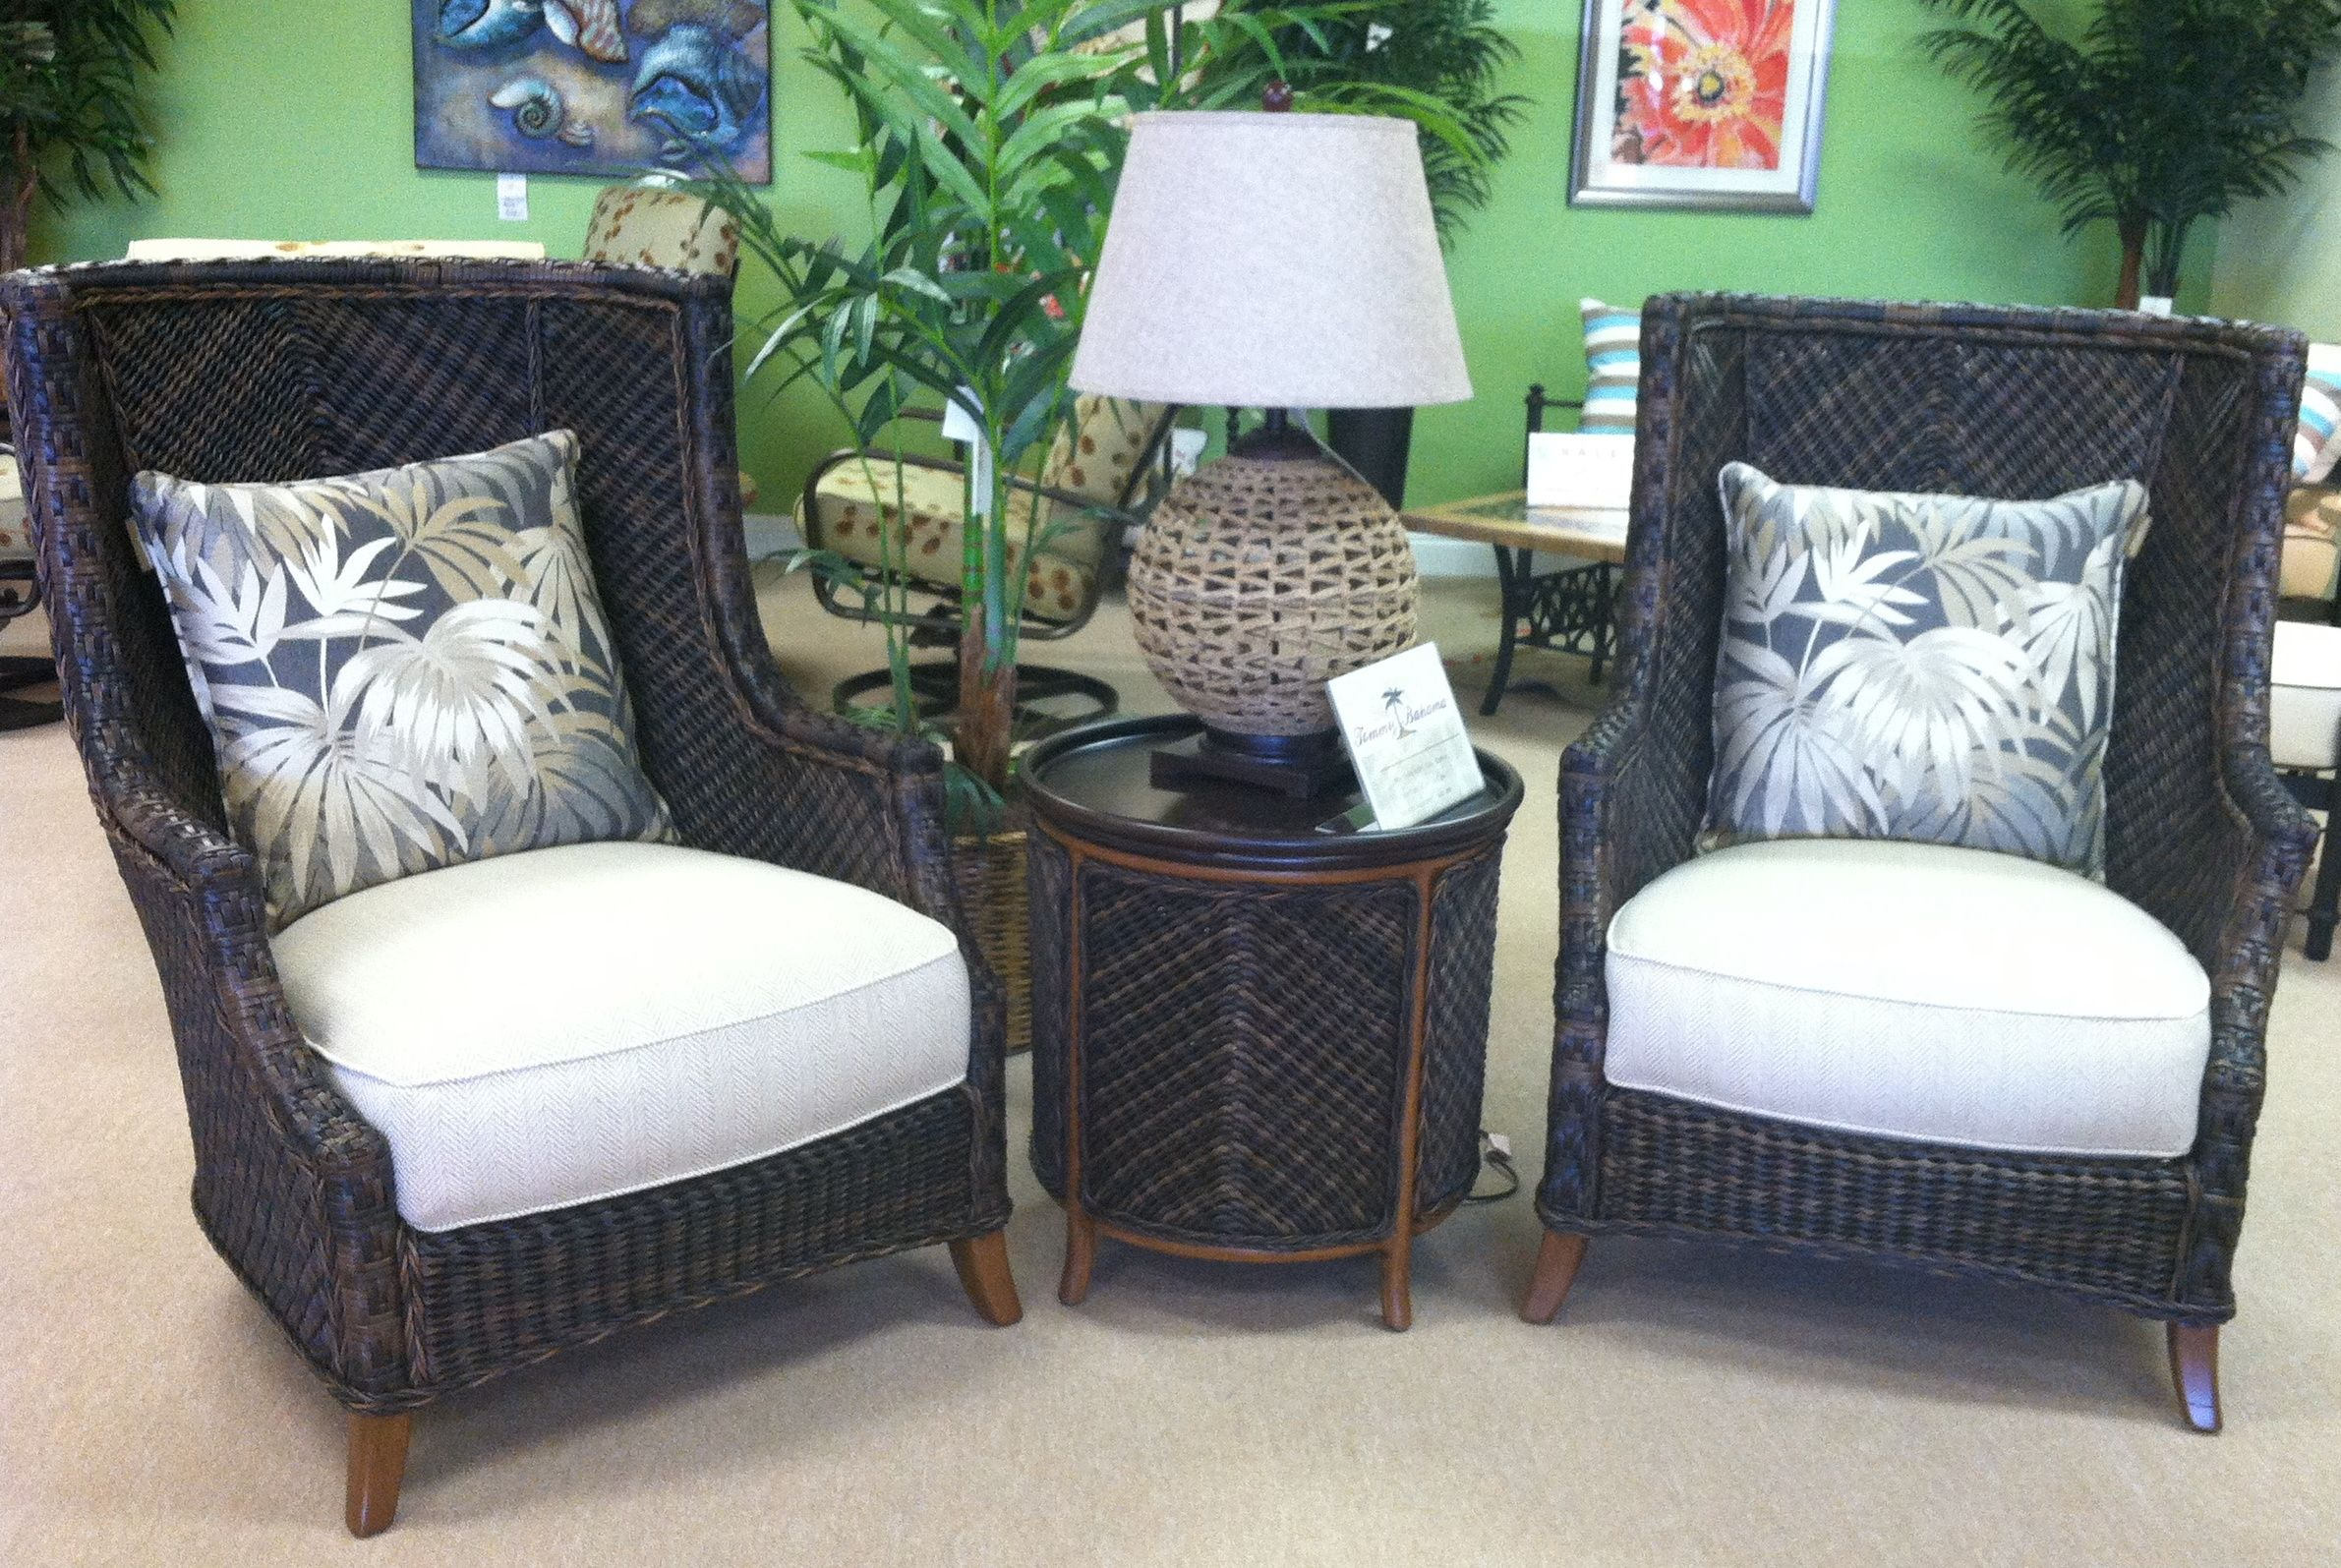 elegant outdoor living outside tommy bahama island estate lanai wing chairs at elegant outdoor living furniture best modern check more http